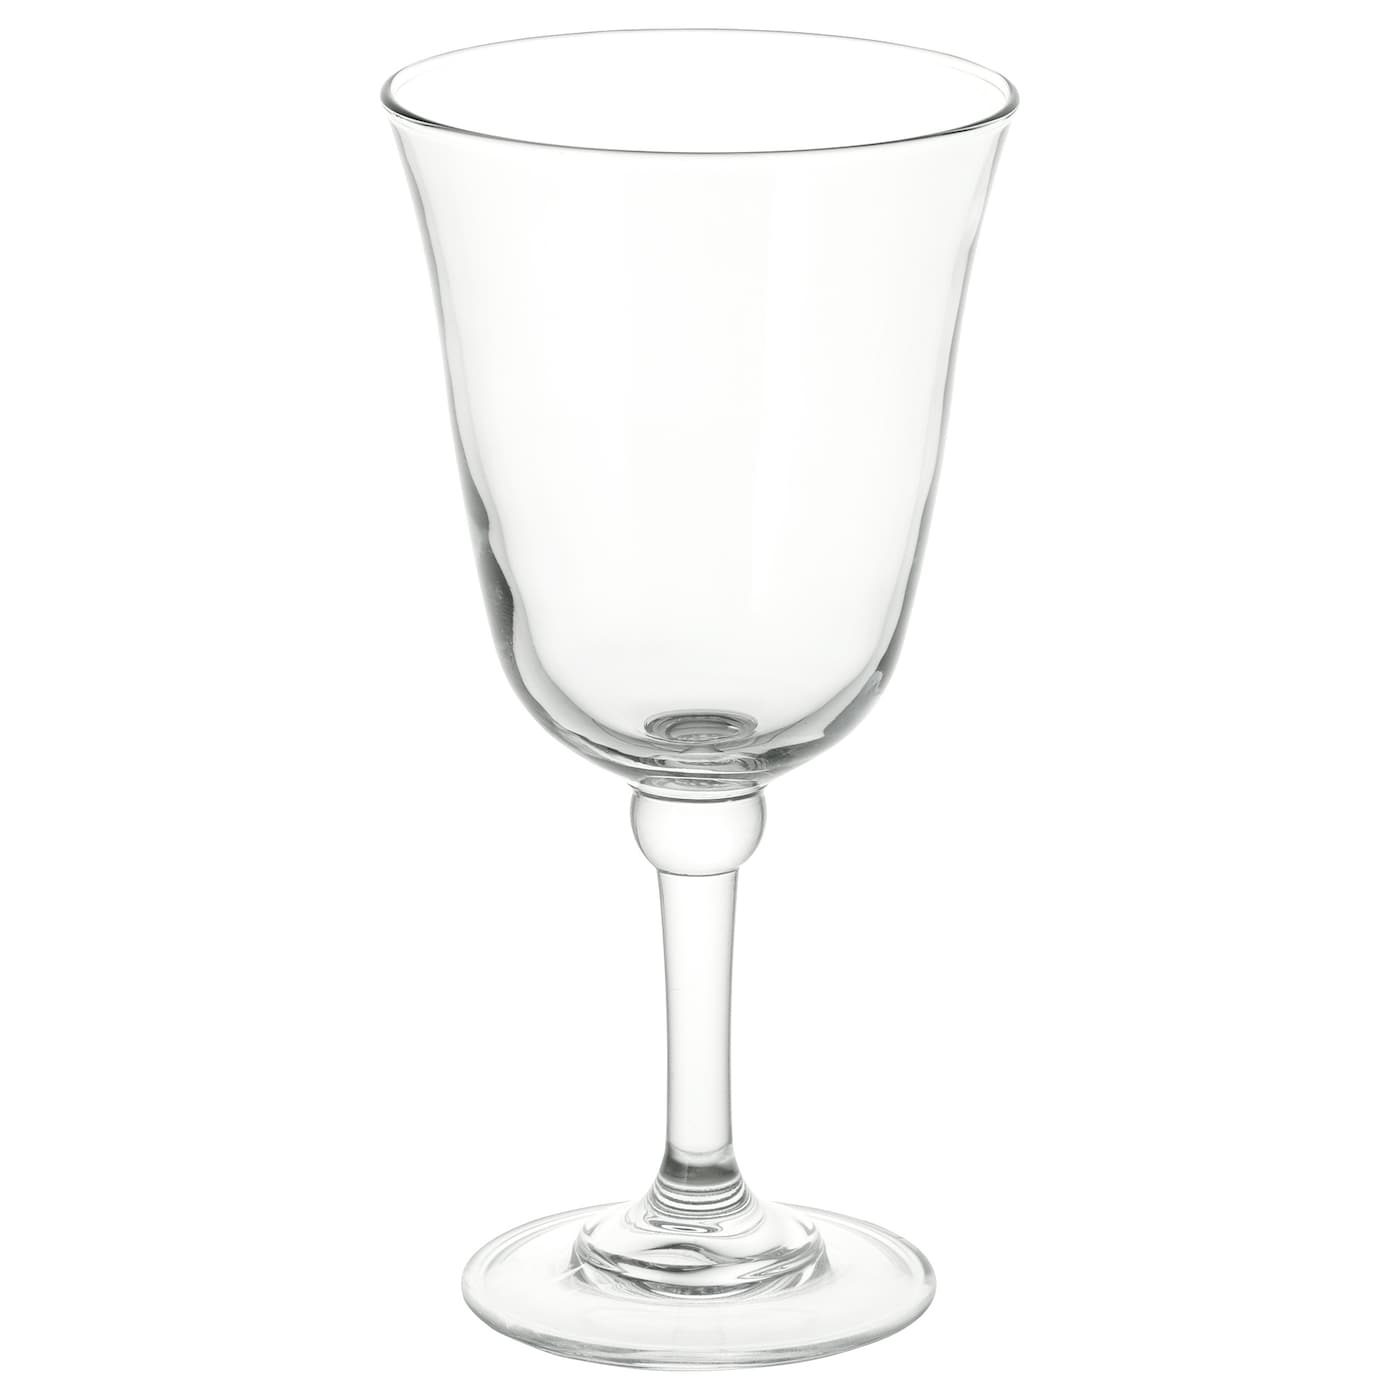 IKEA FRAMTRÄDA wine glass